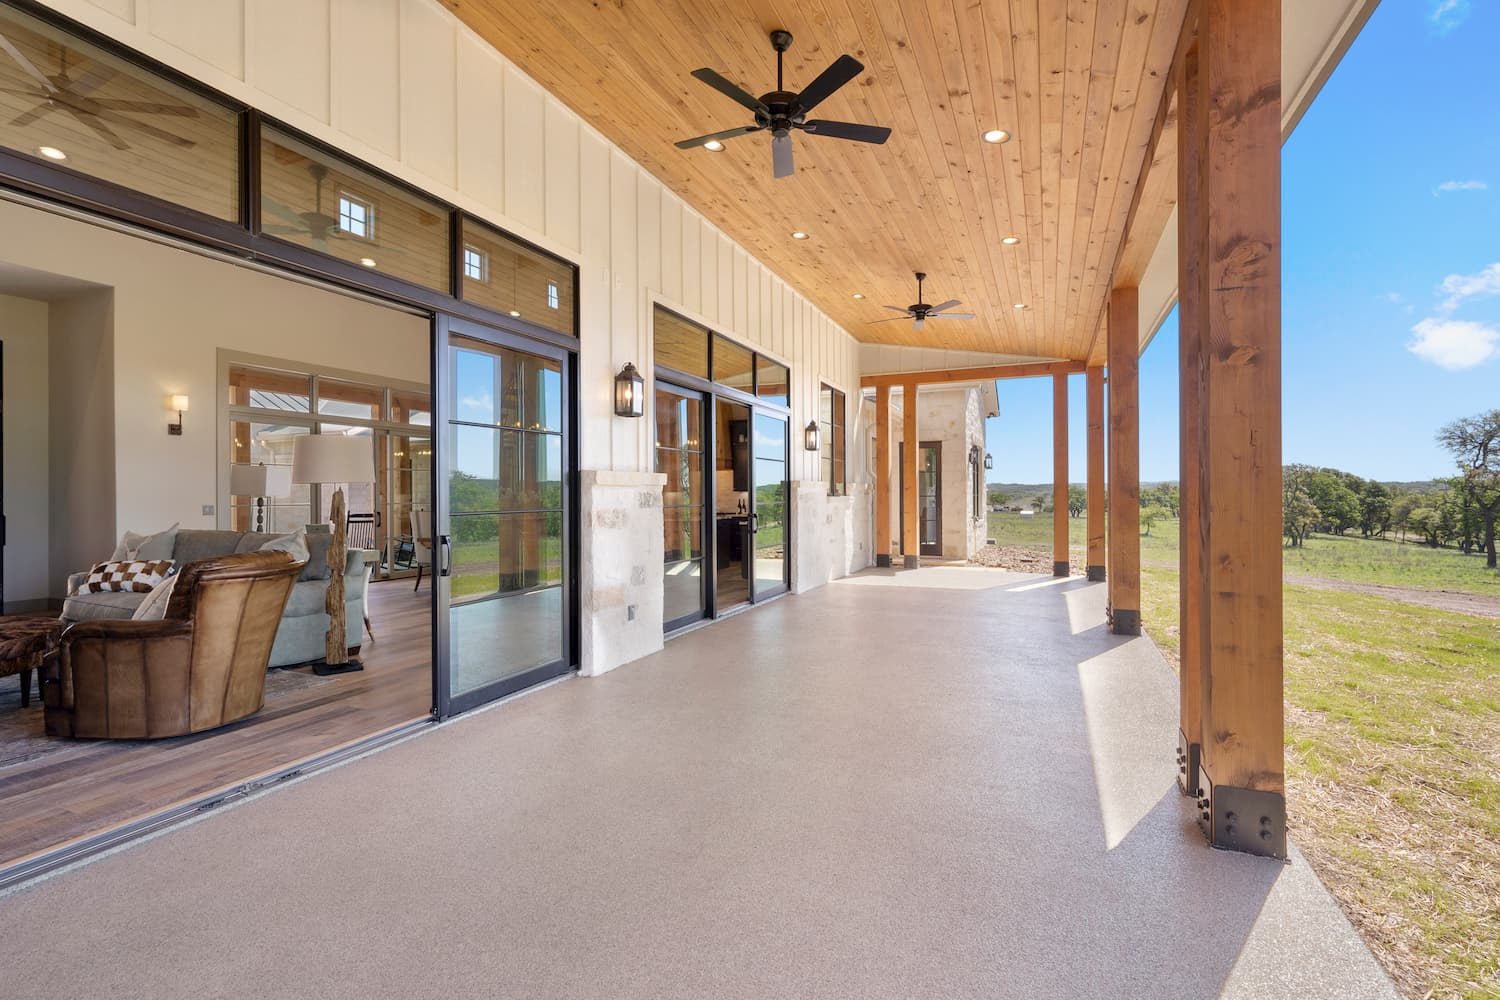 Rear view of Texas farmhouse style home with sliding glass doors